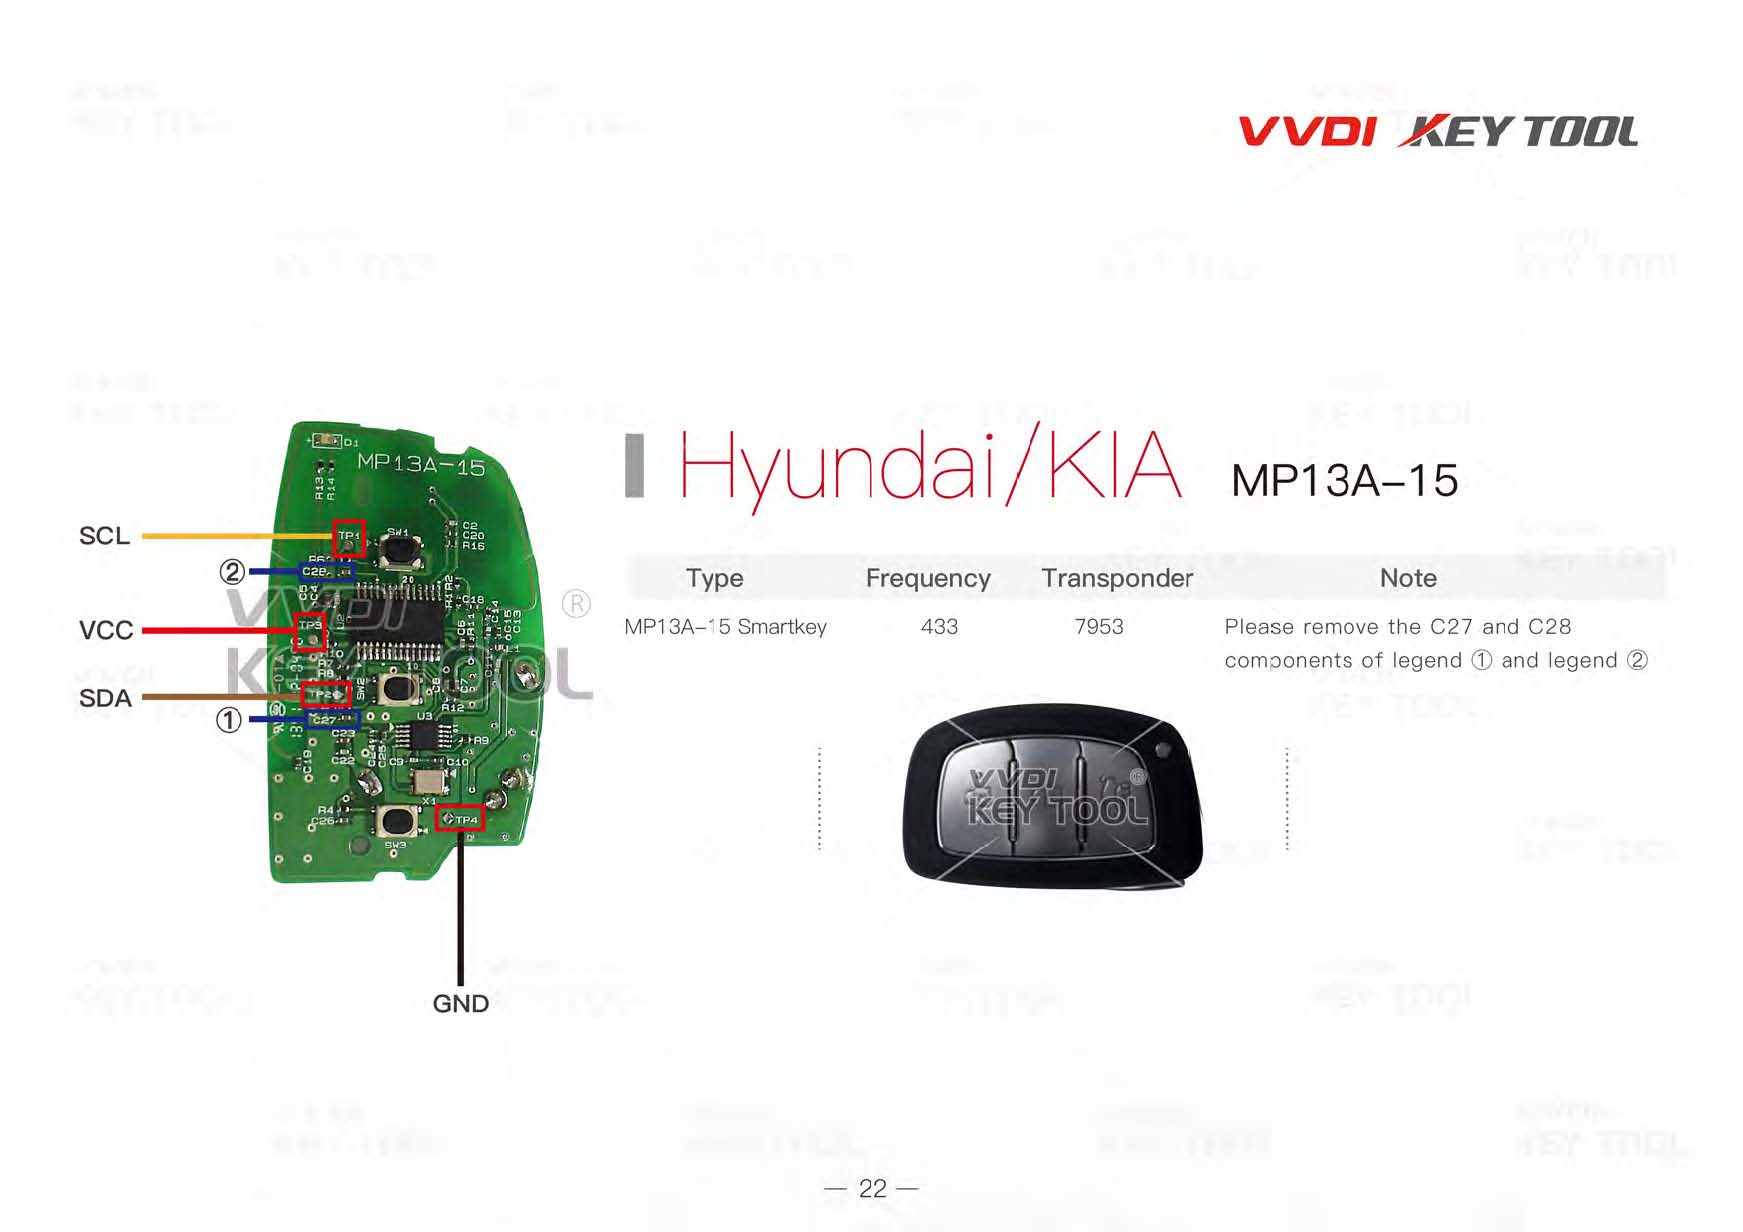 vvdi-key-tool-renew-diagram-22